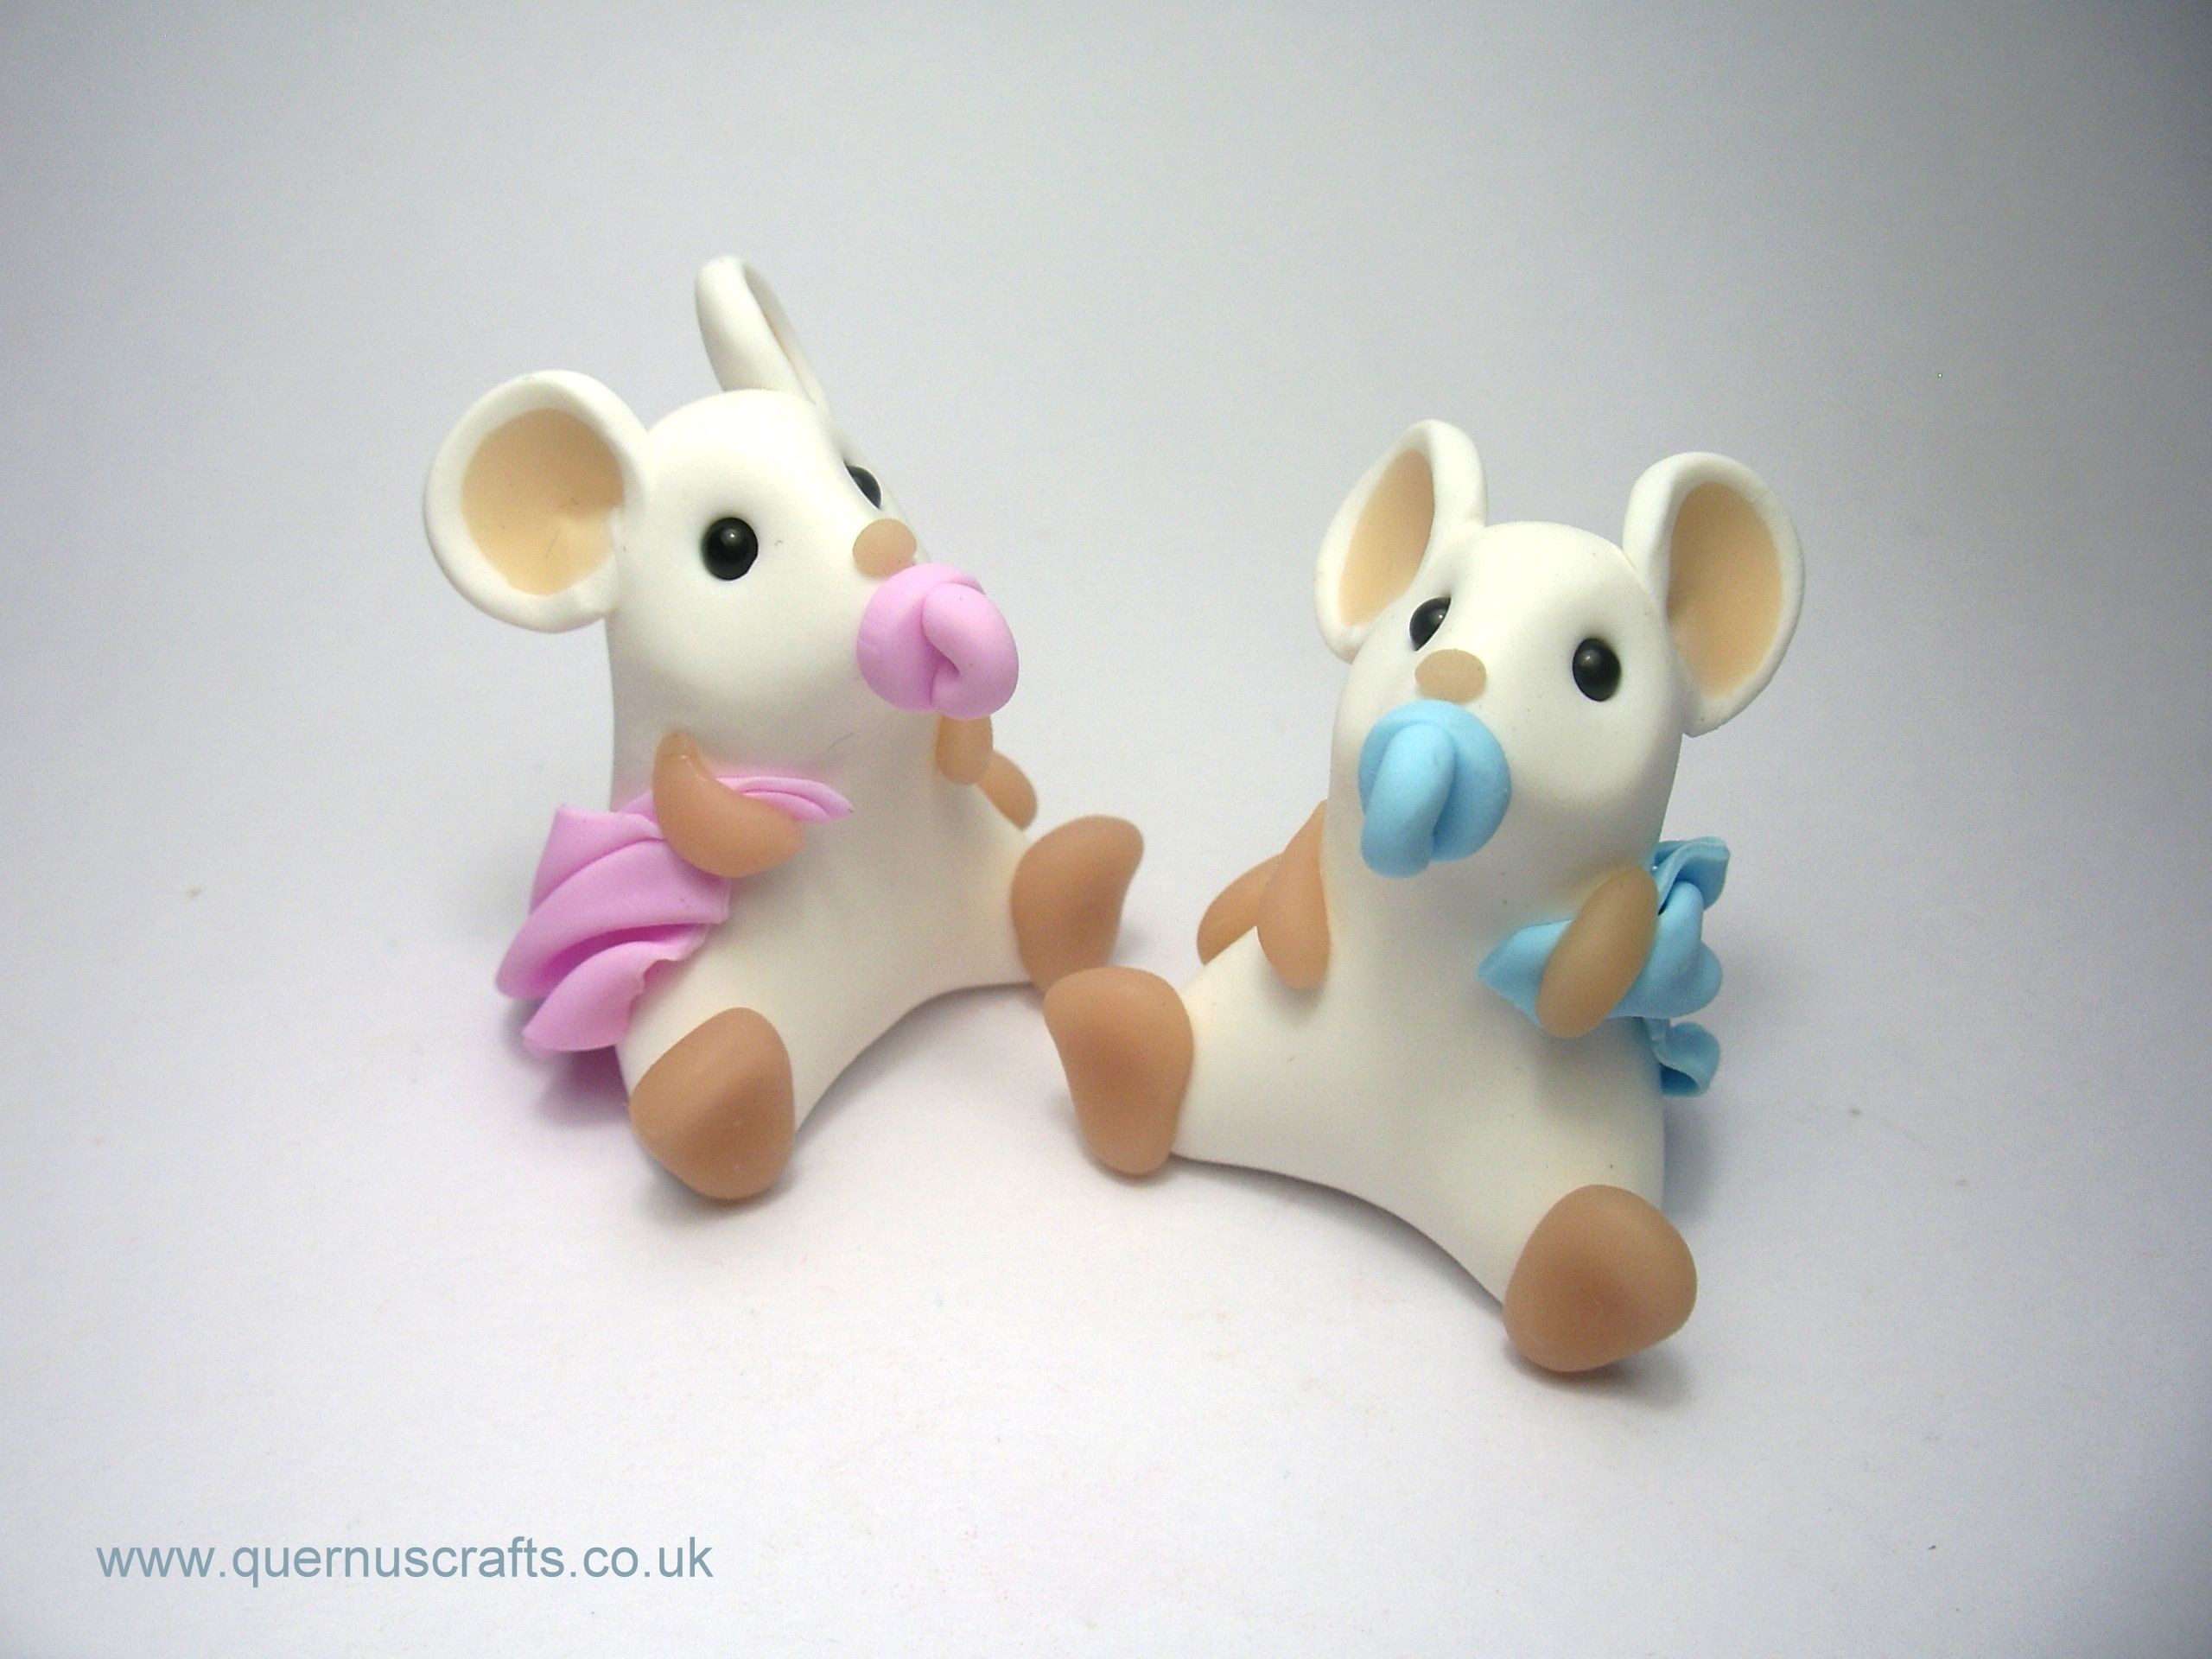 New baby ornaments - Baby Mouse Christening New Baby Ornament Sculpture Sold Individually